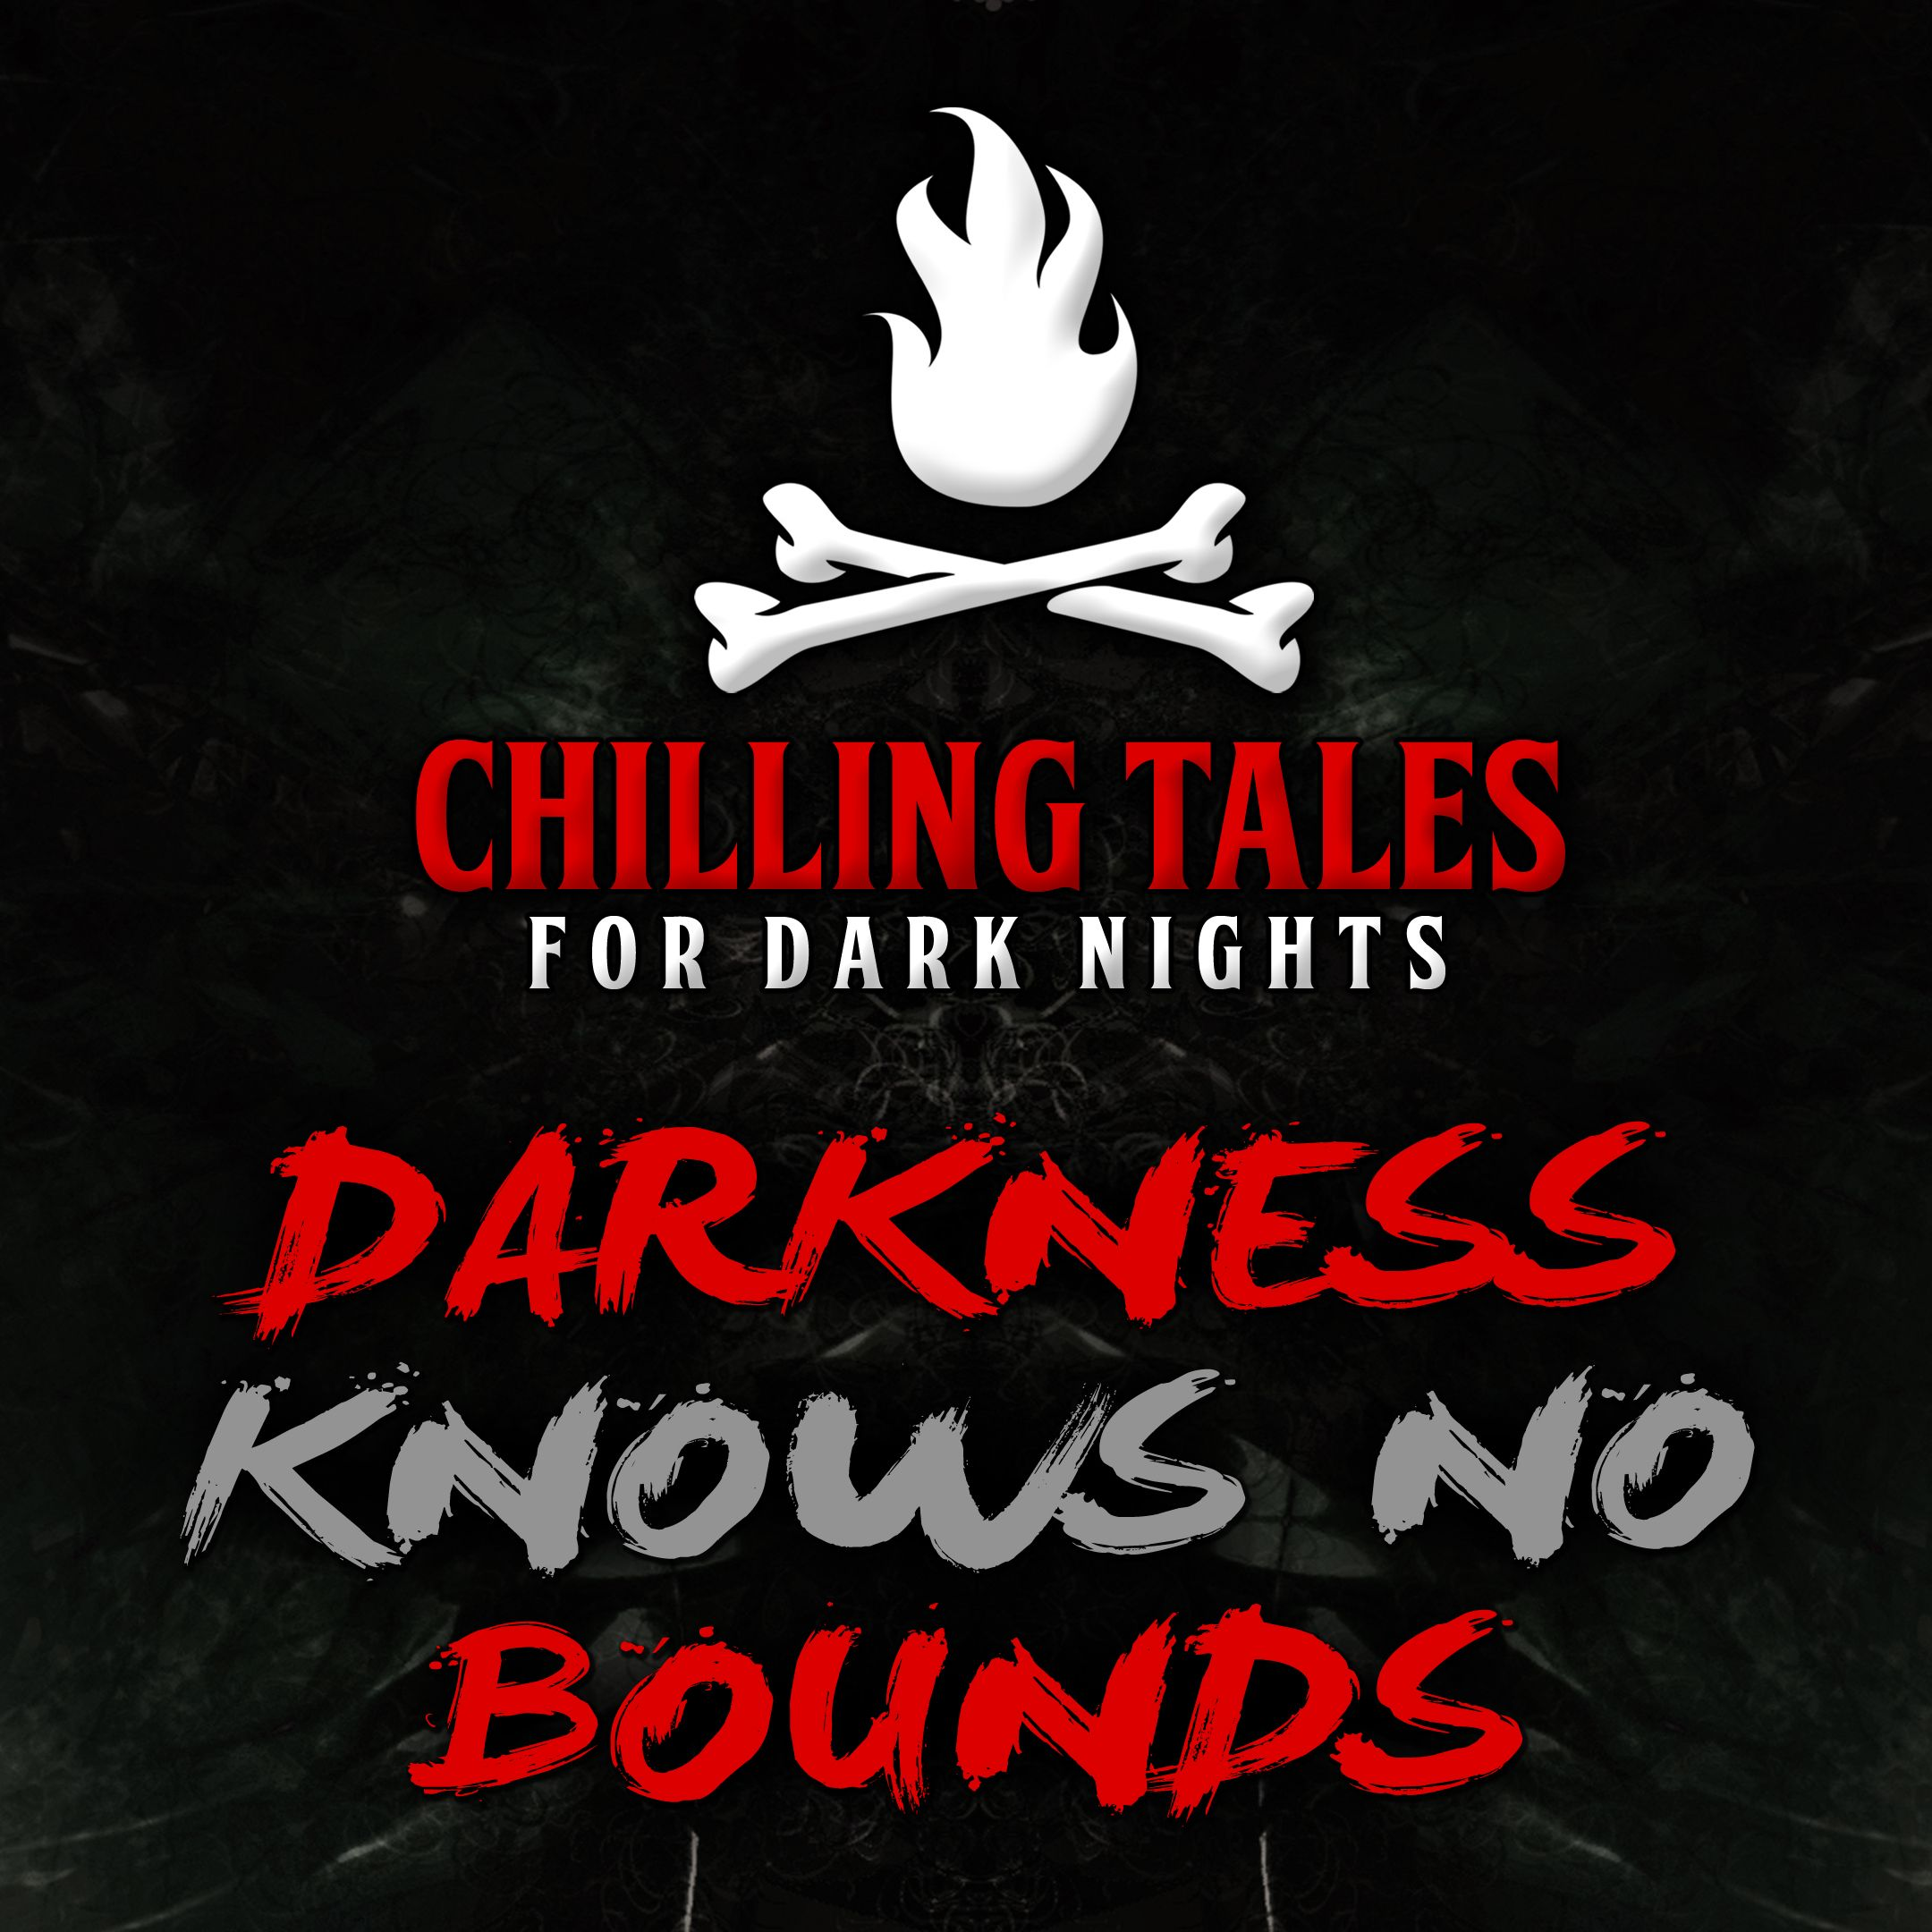 77: Darkness Knows No Bounds – Chilling Tales for Dark Nights